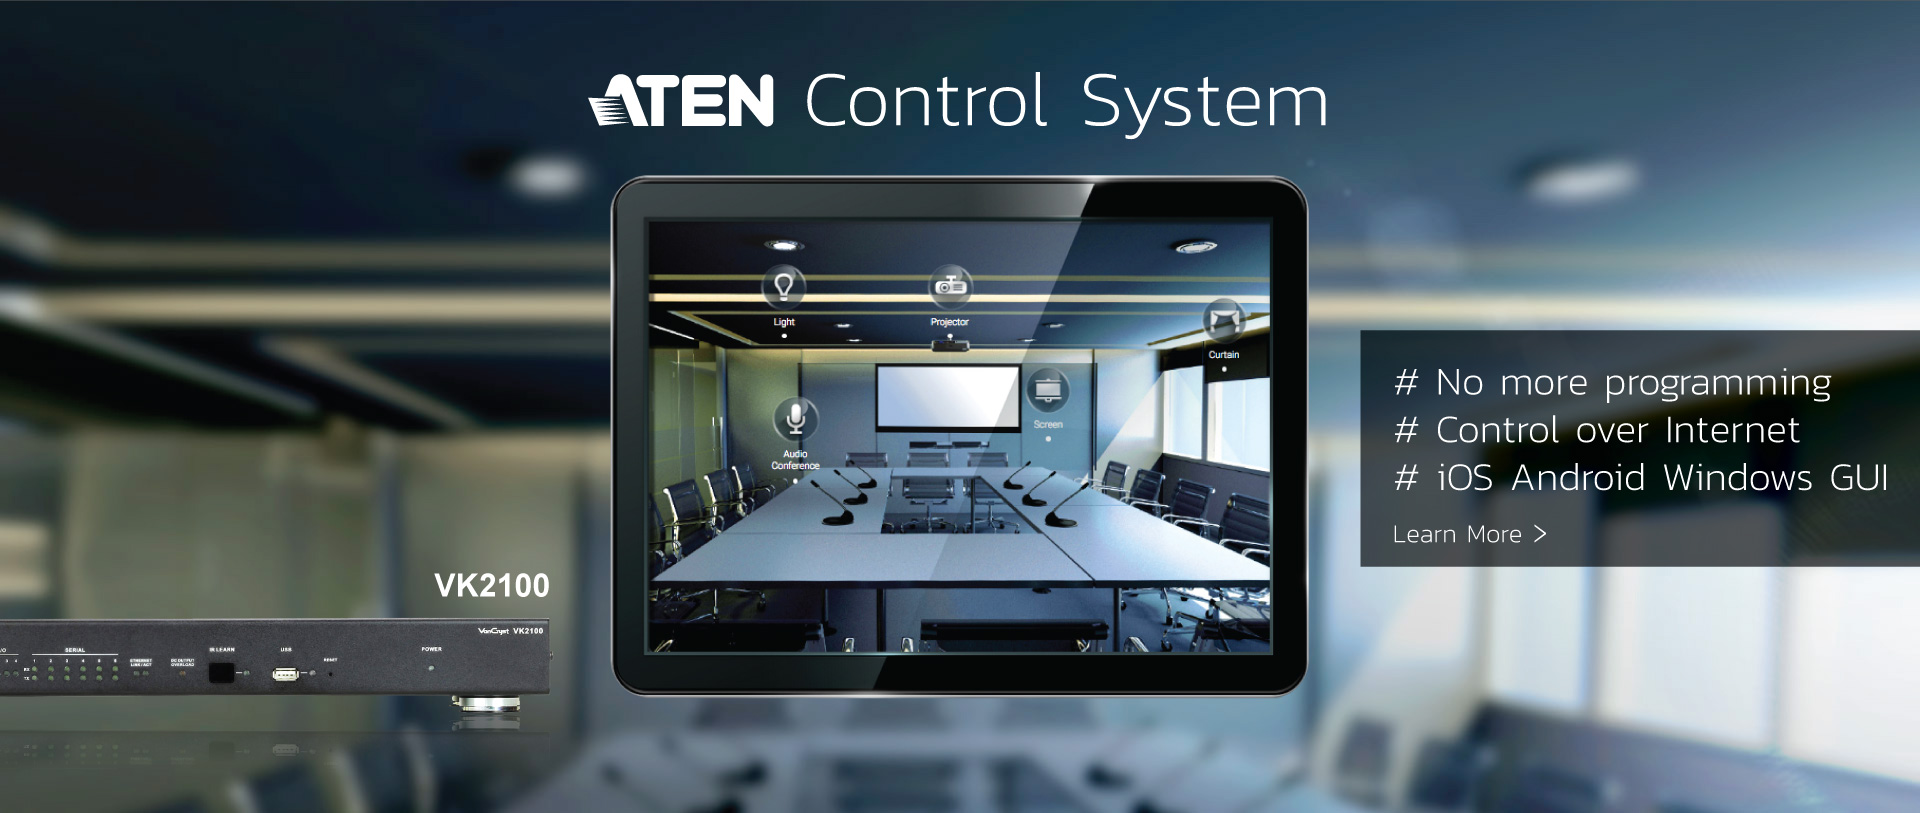 ATEN Control system controller